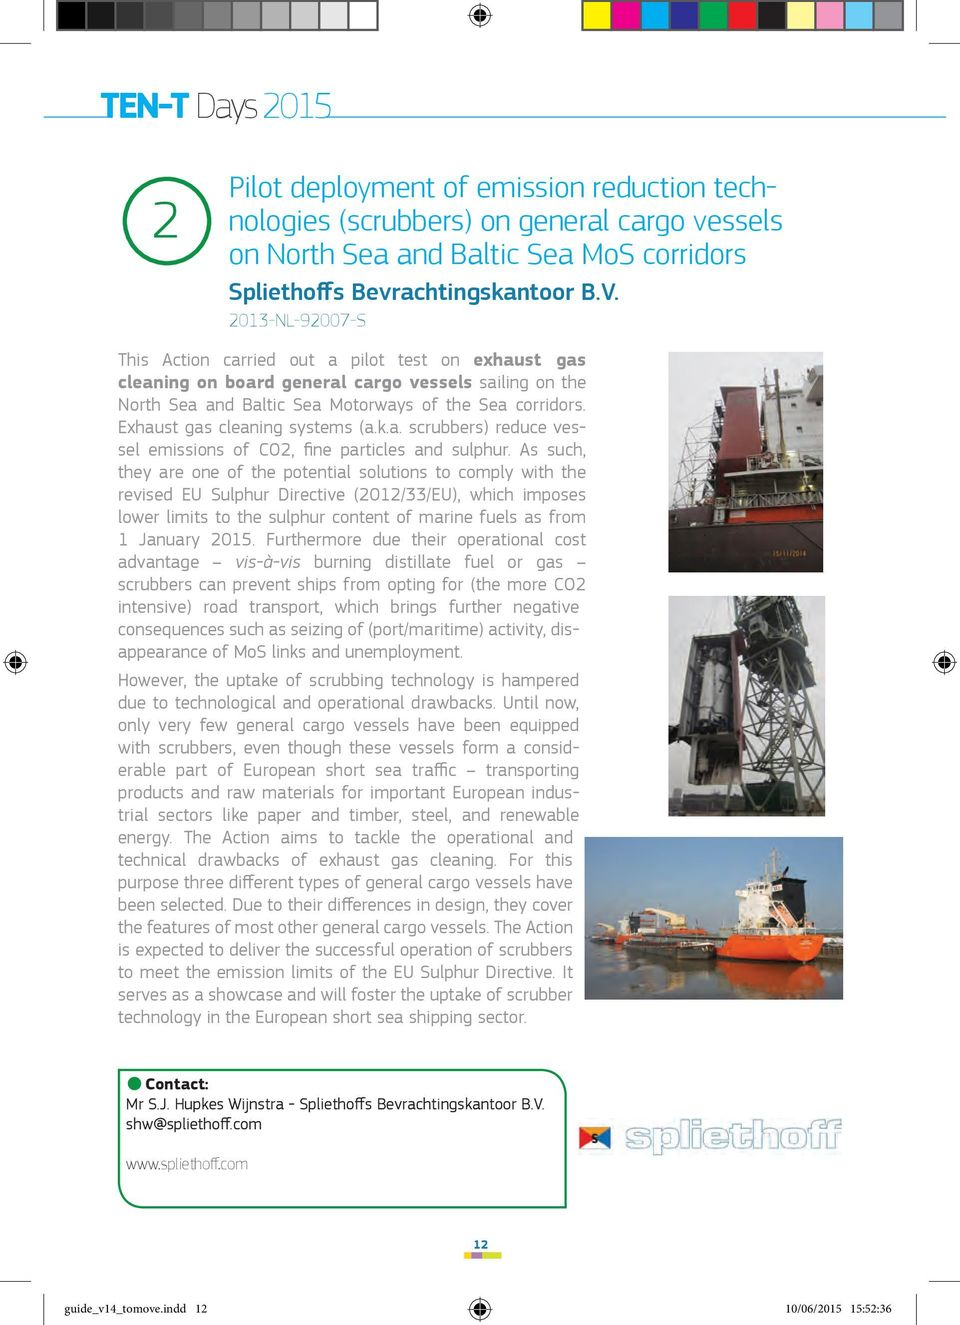 Exhaust gas cleaning systems (a.k.a. scrubbers) reduce vessel emissions of CO2, fine particles and sulphur.